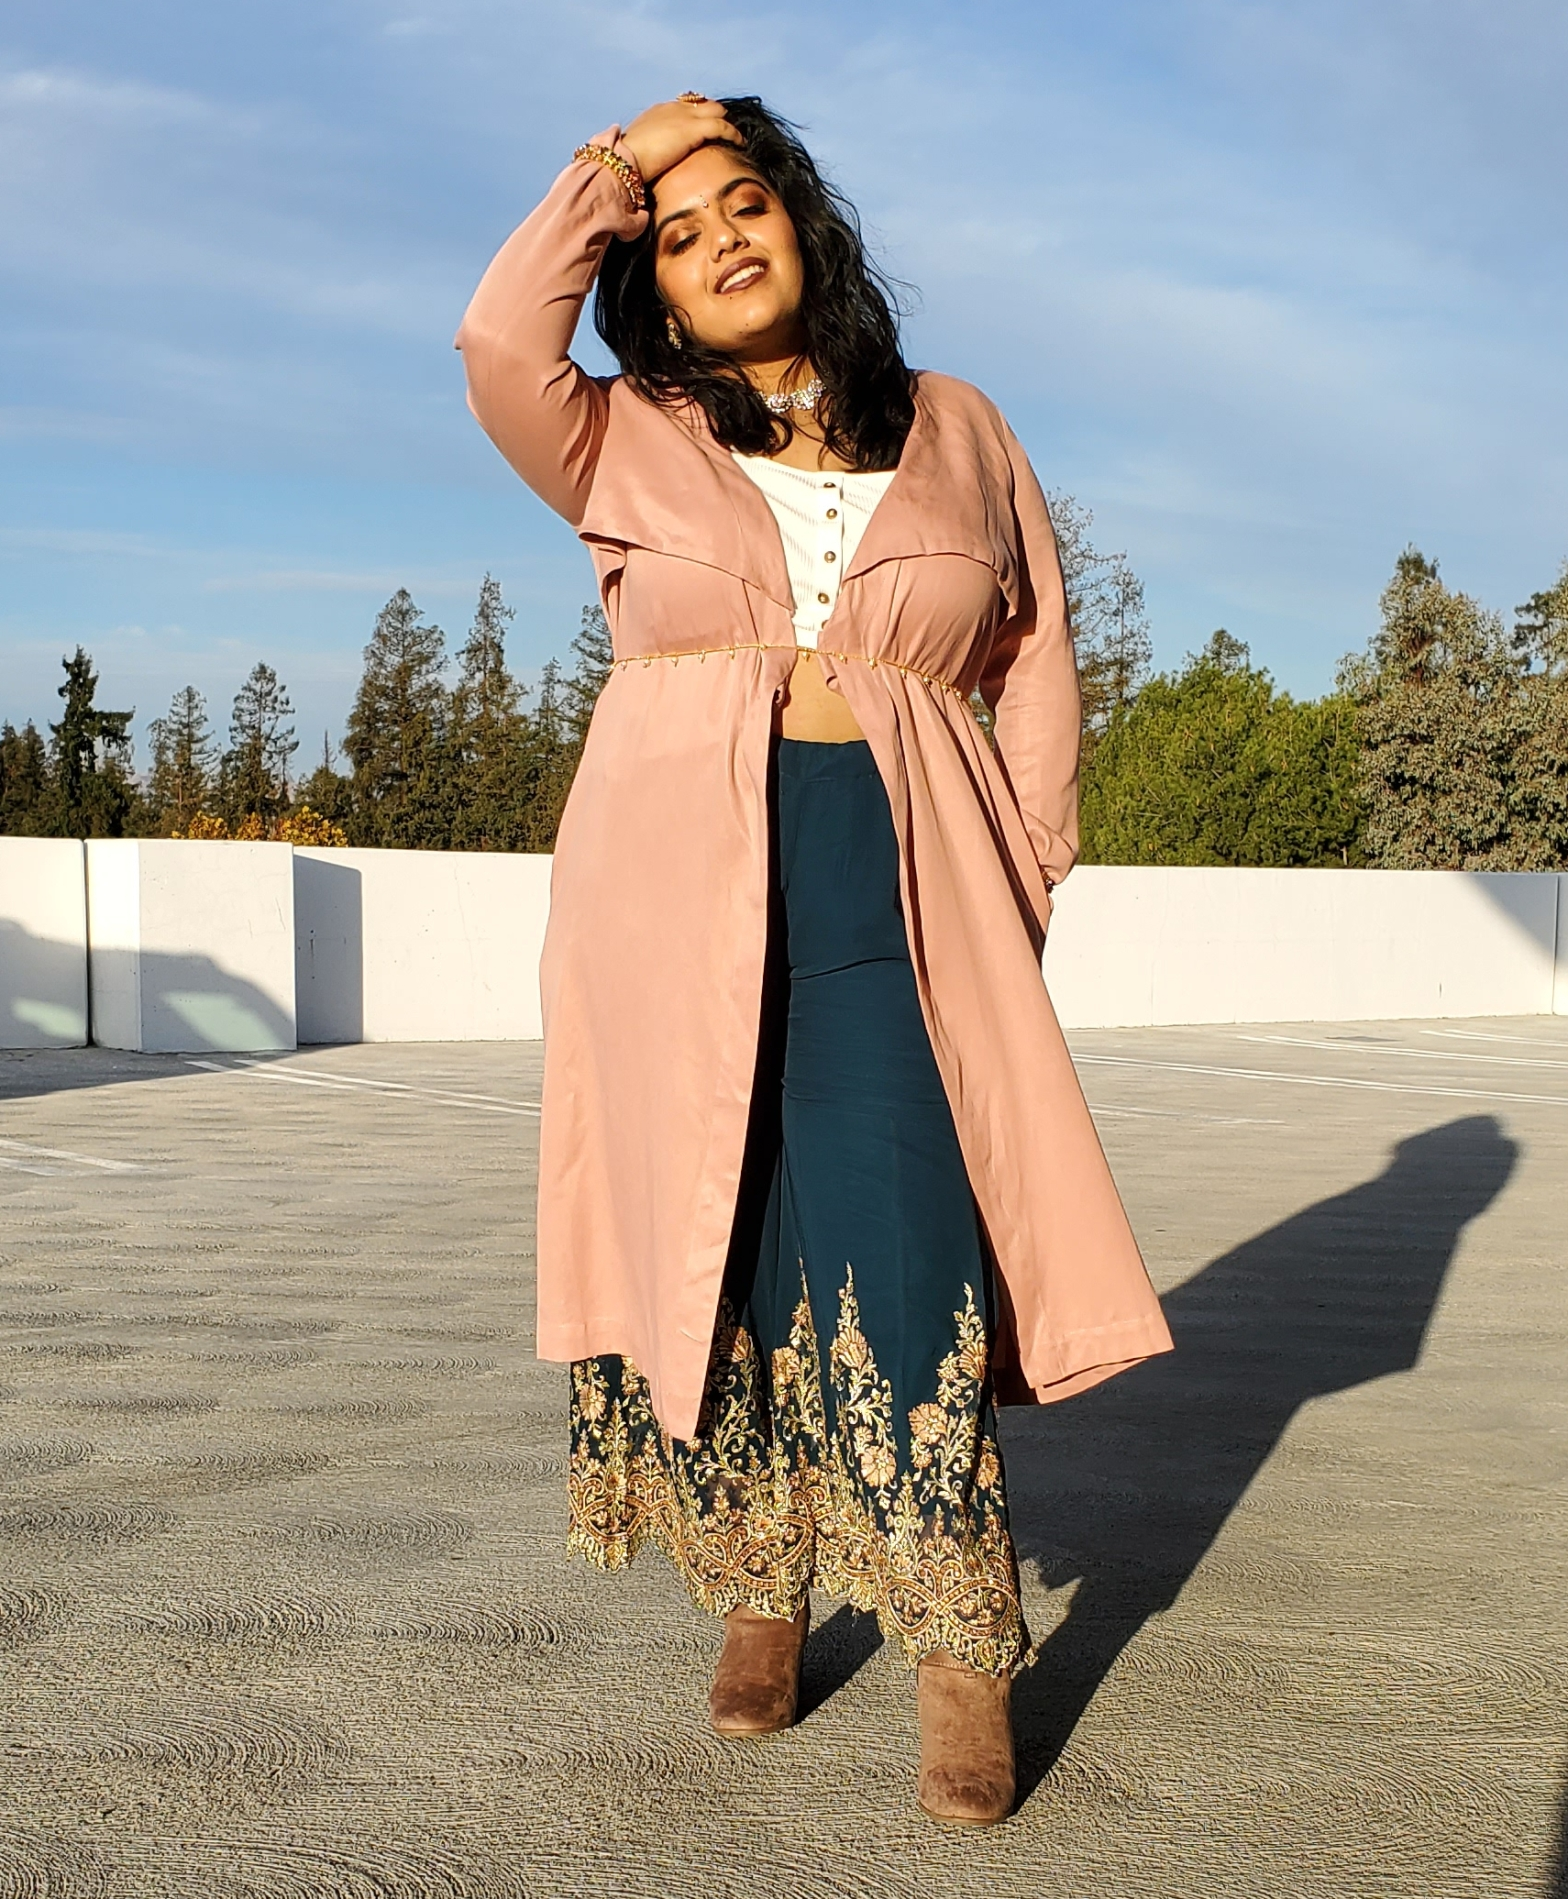 Renuka standing in an indowestern outfit with teal embroidered pants and a pink trench coat